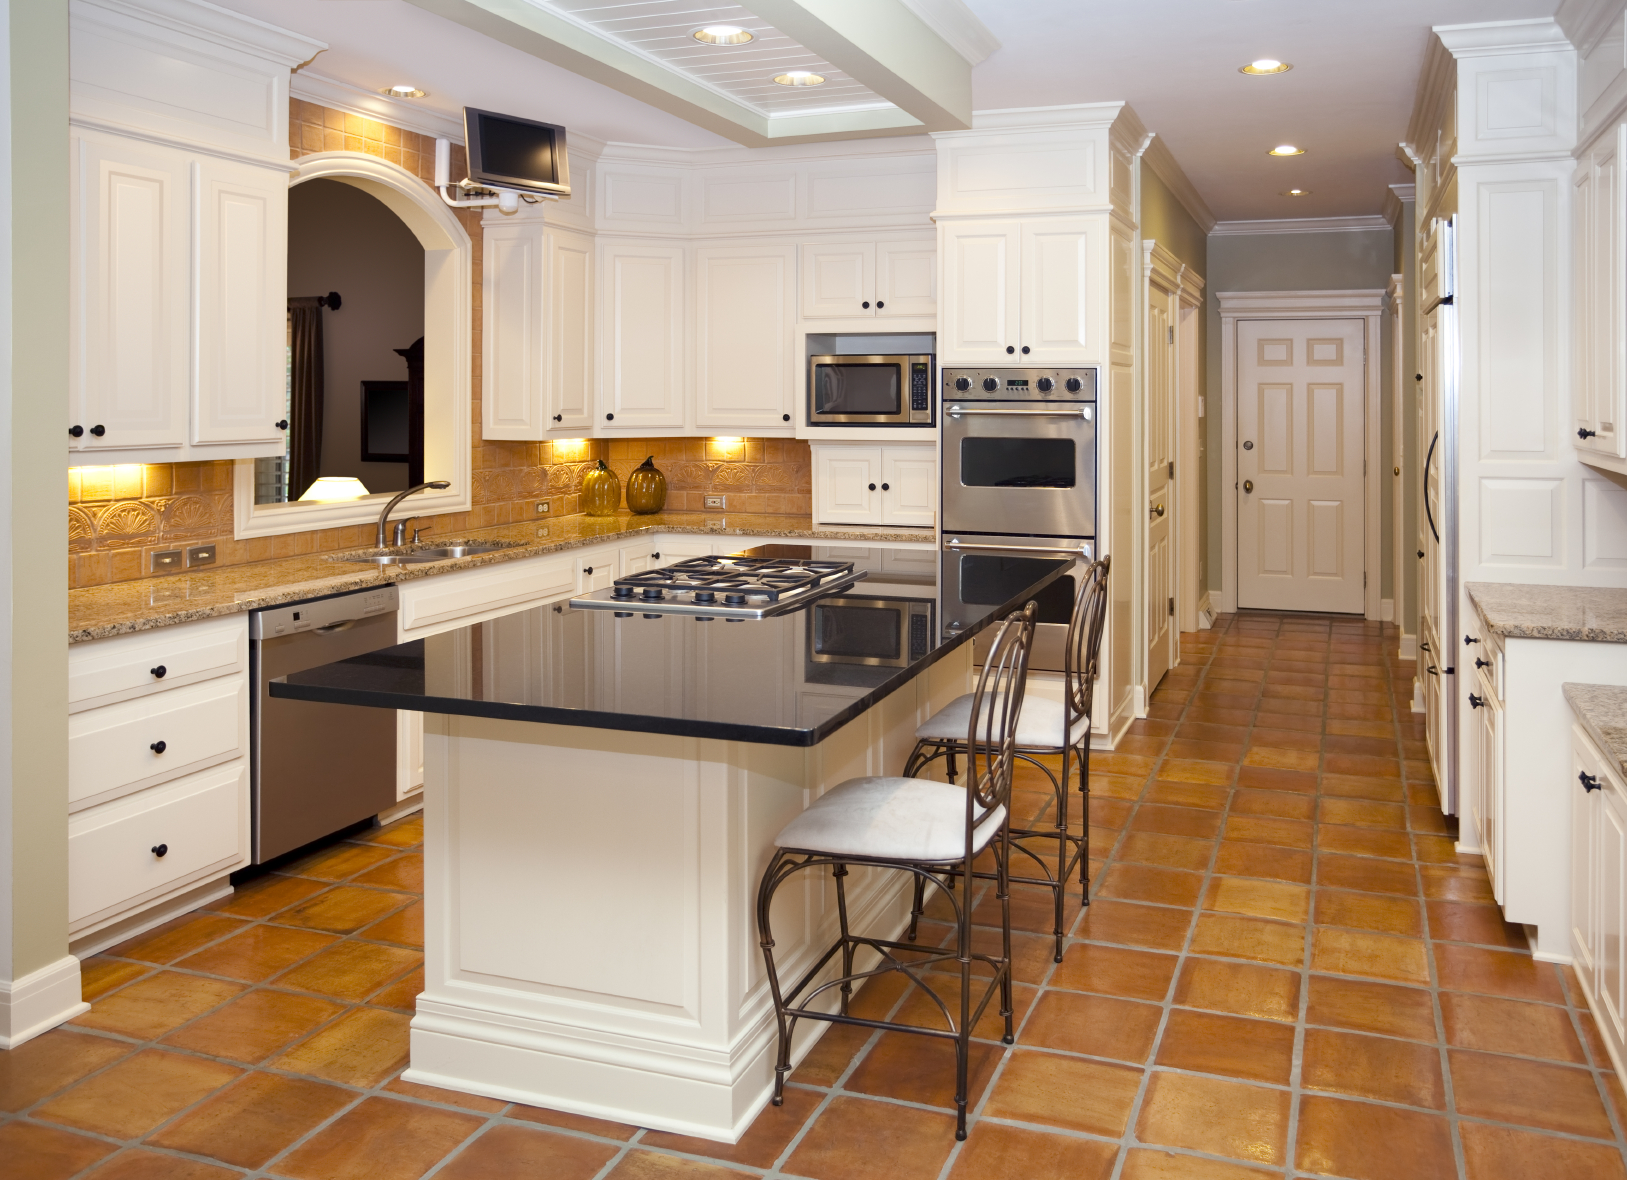 Home Decor wood floor kitchen